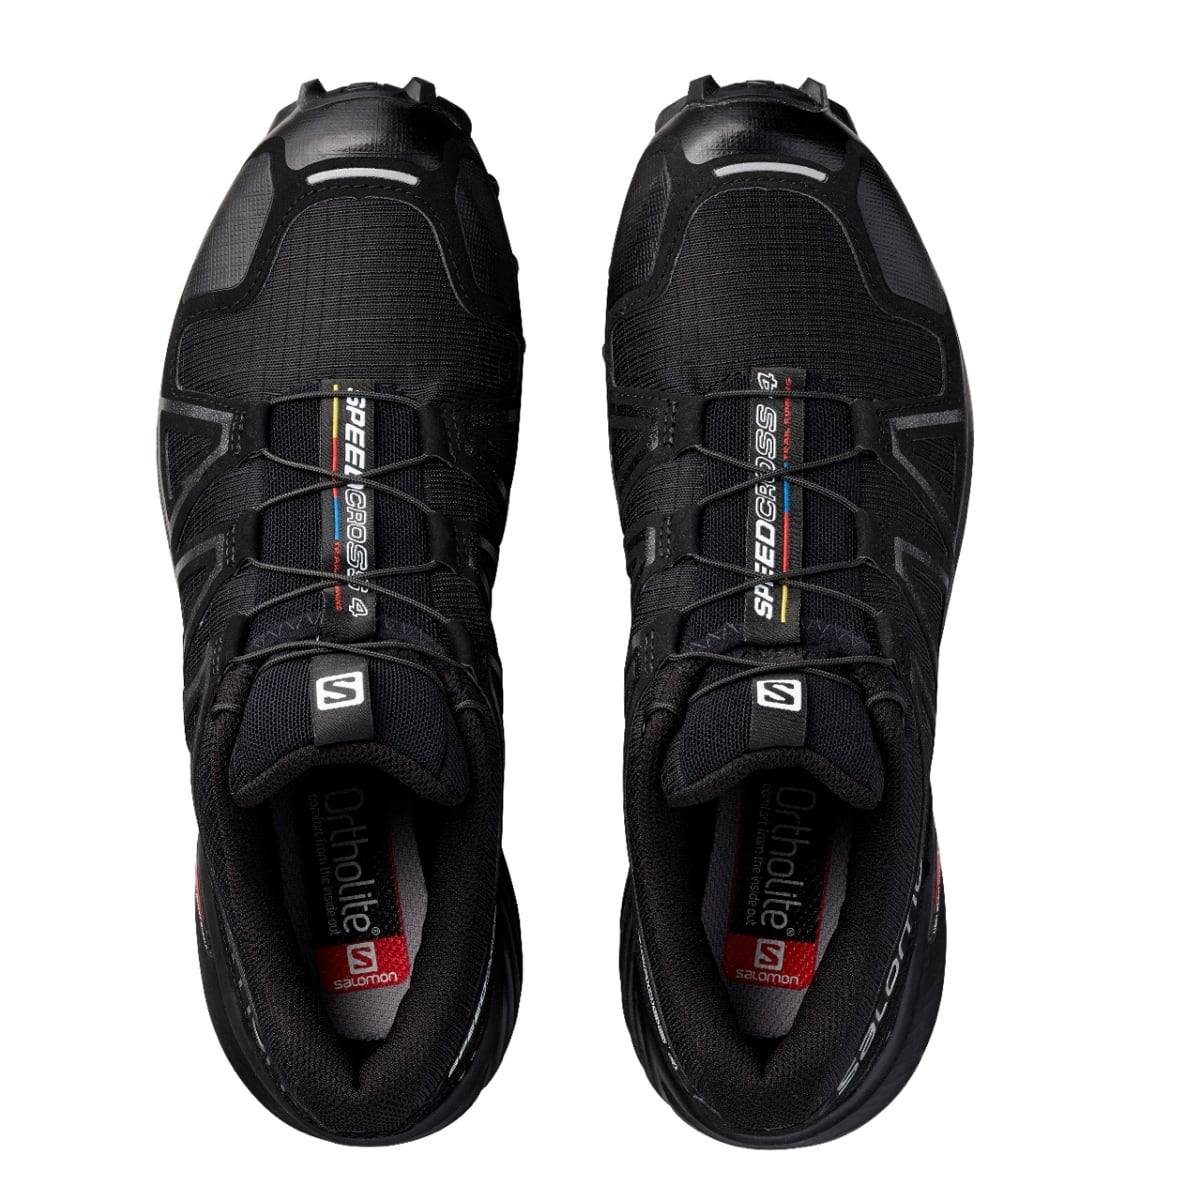 Salomon XA PRO 3D ADV is Perfect for the Sleet or the